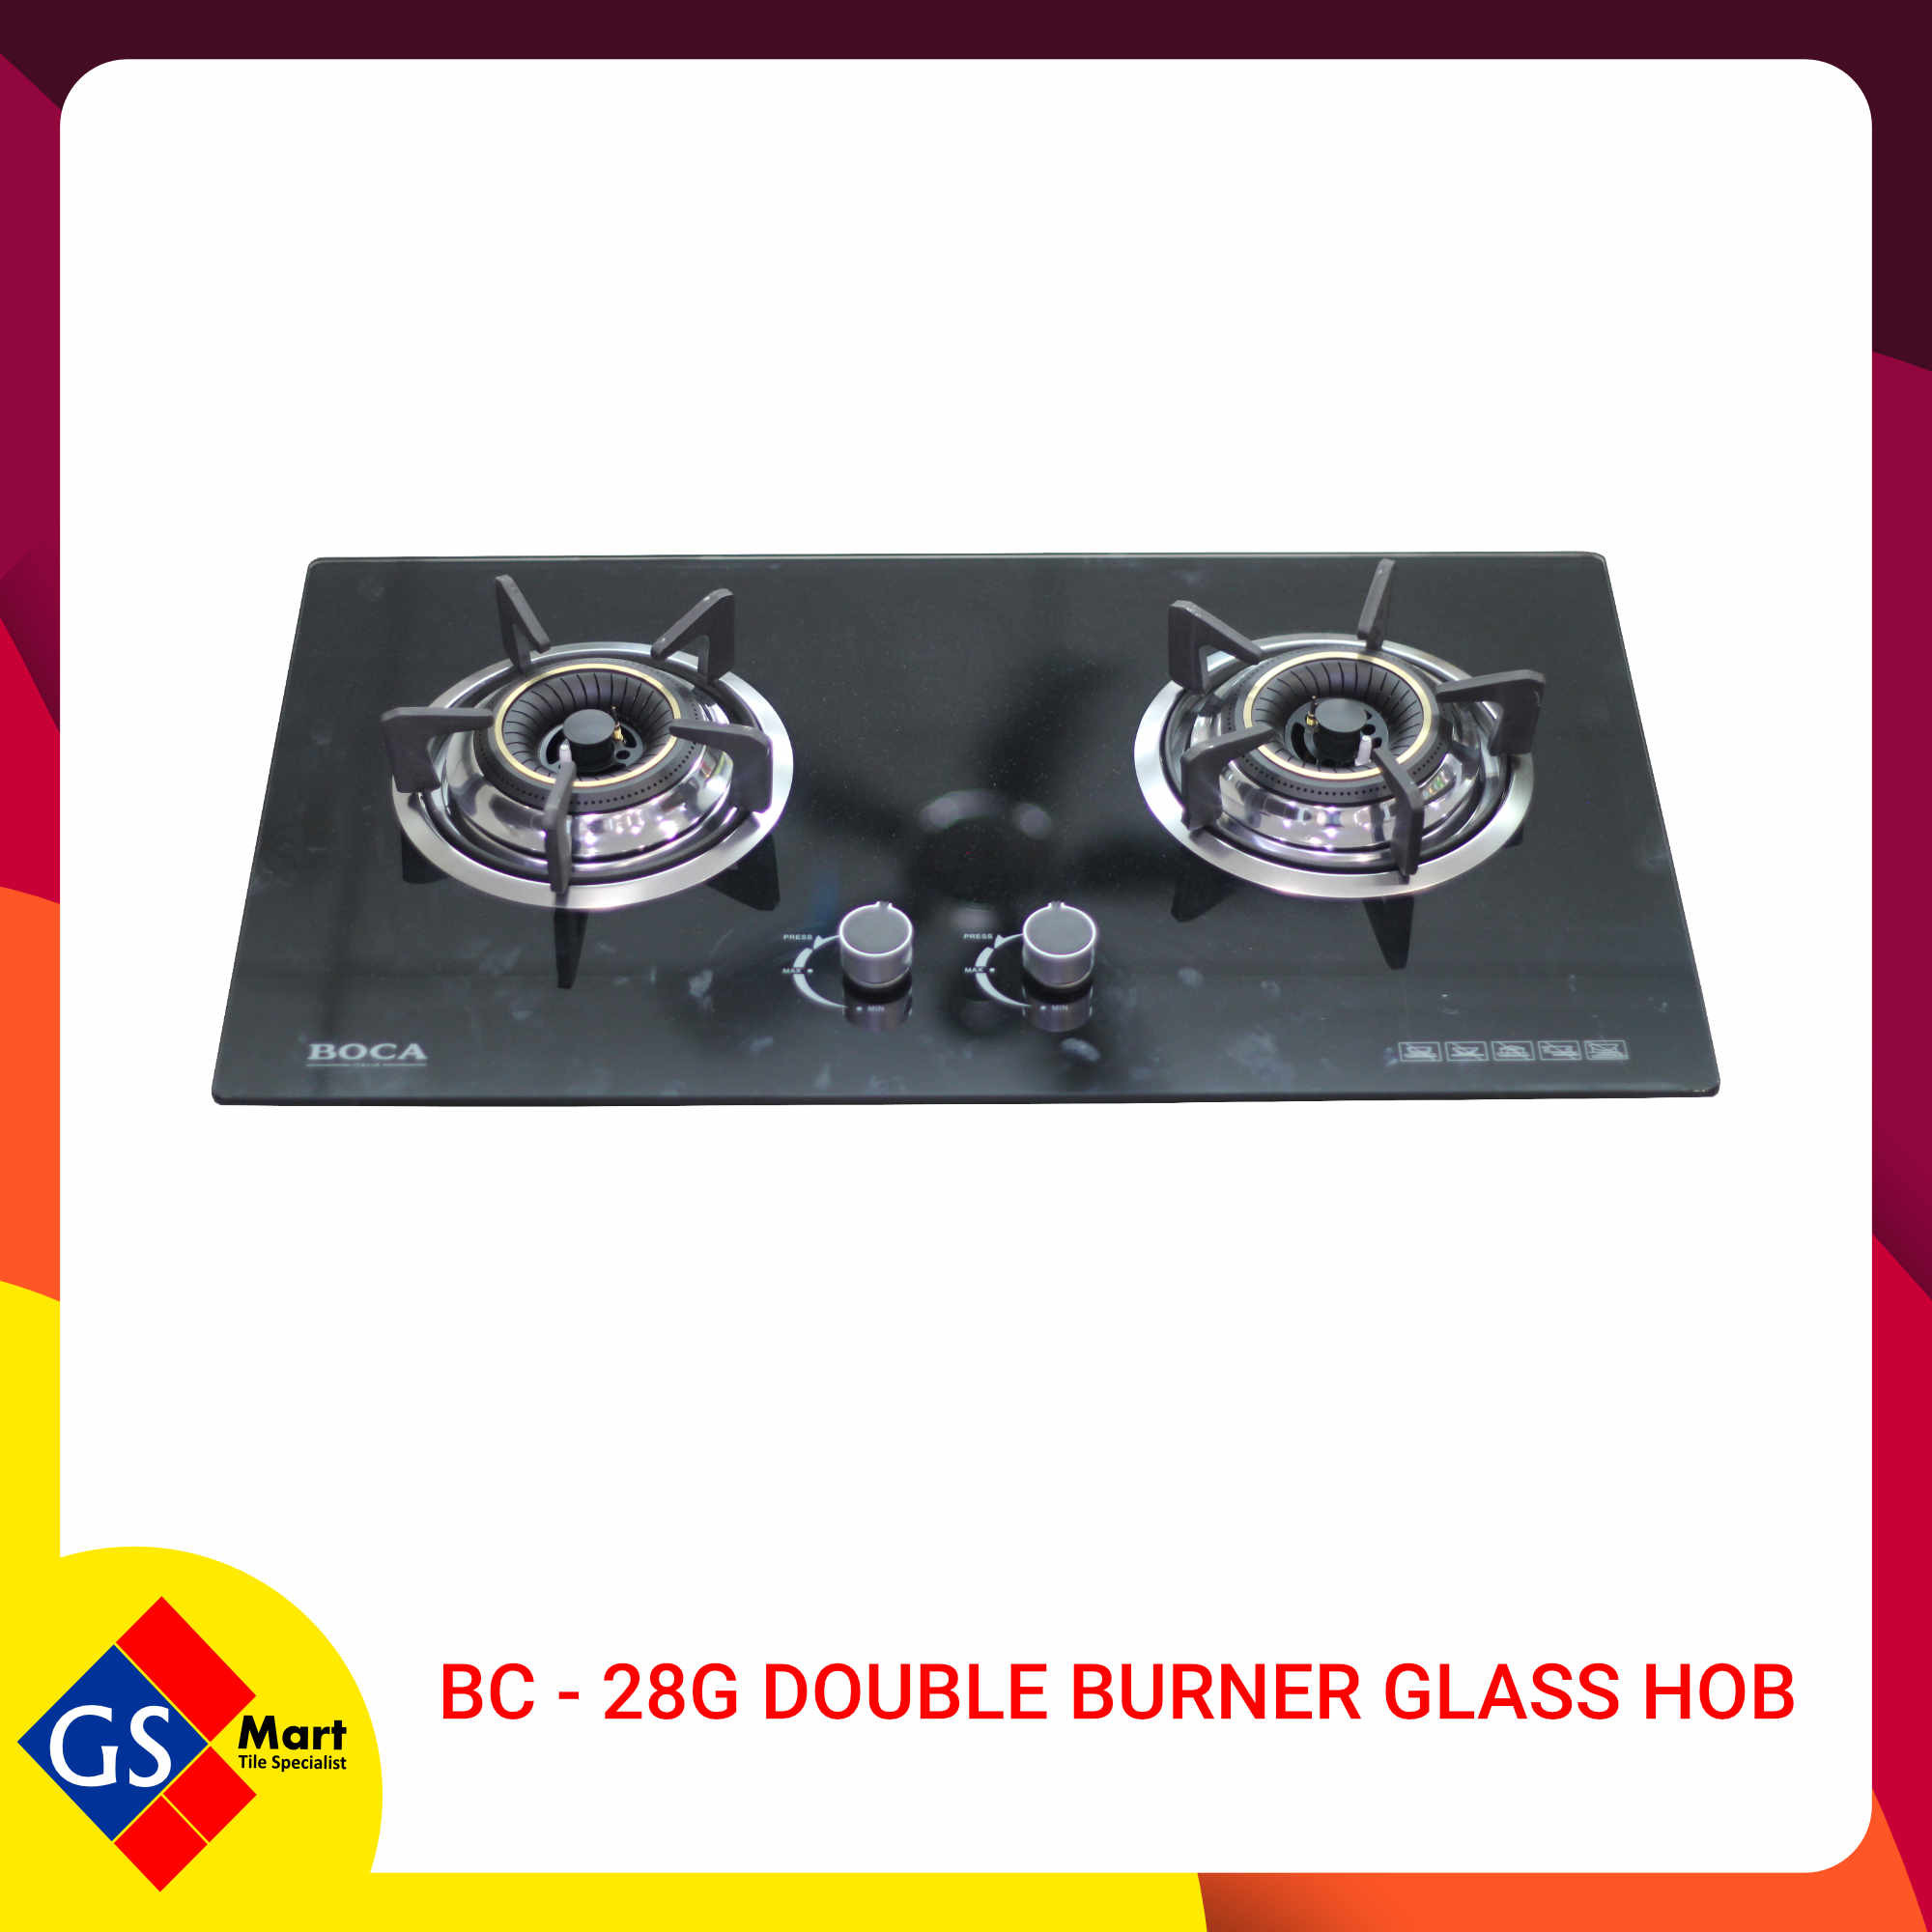 image of BC - 28G Double Burner Glass Hob